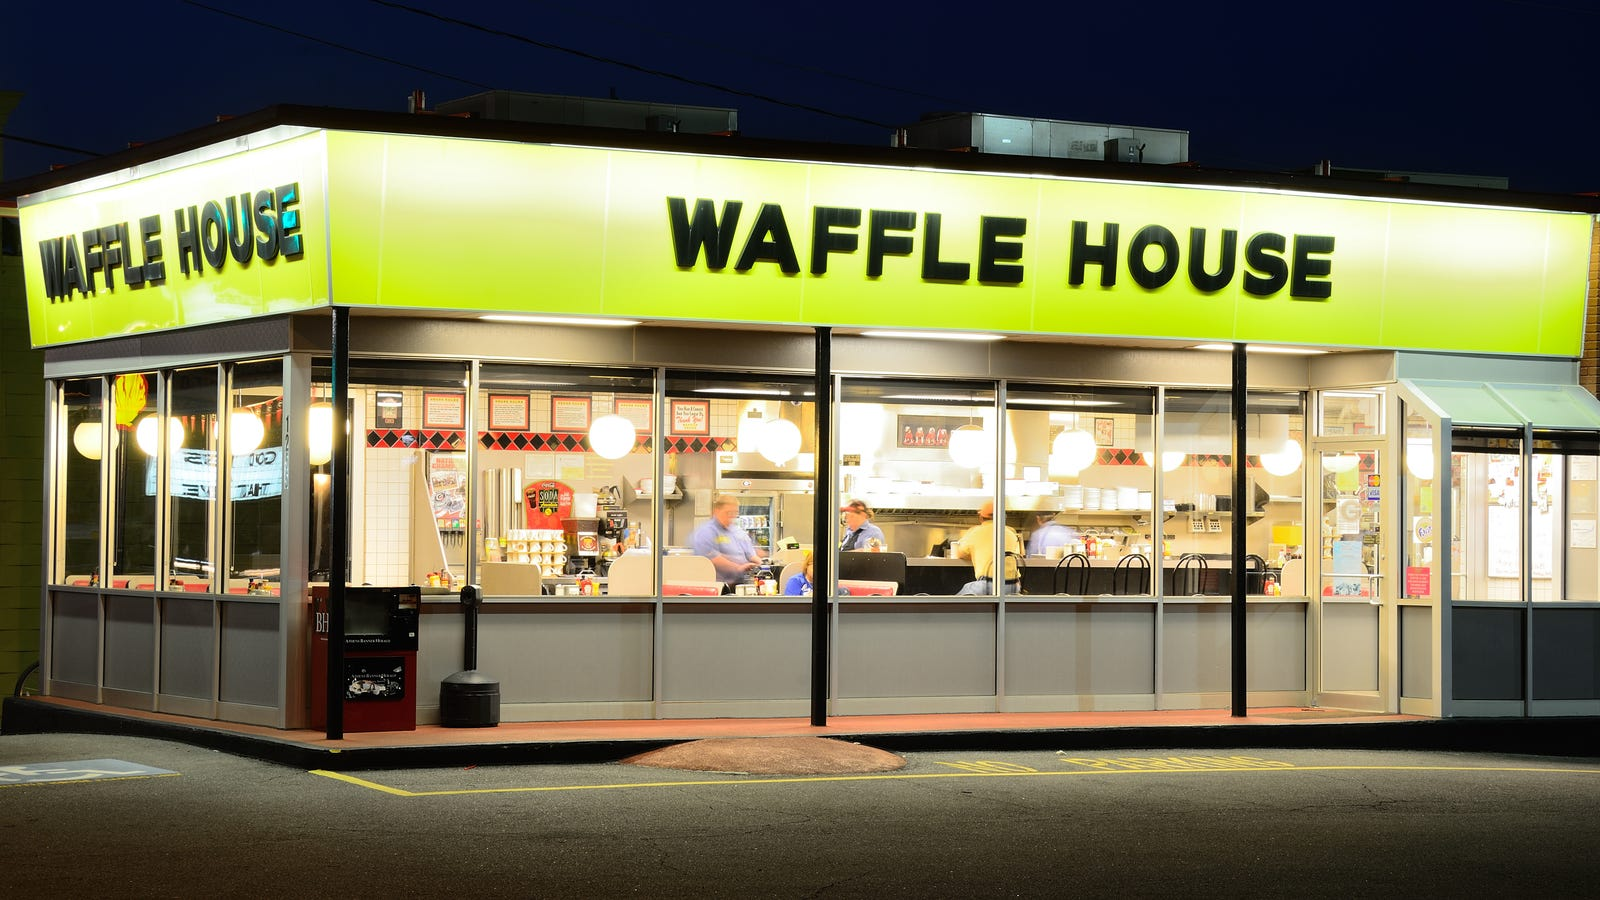 Black Woman Says She Wasn't Allowed In Waffle House As